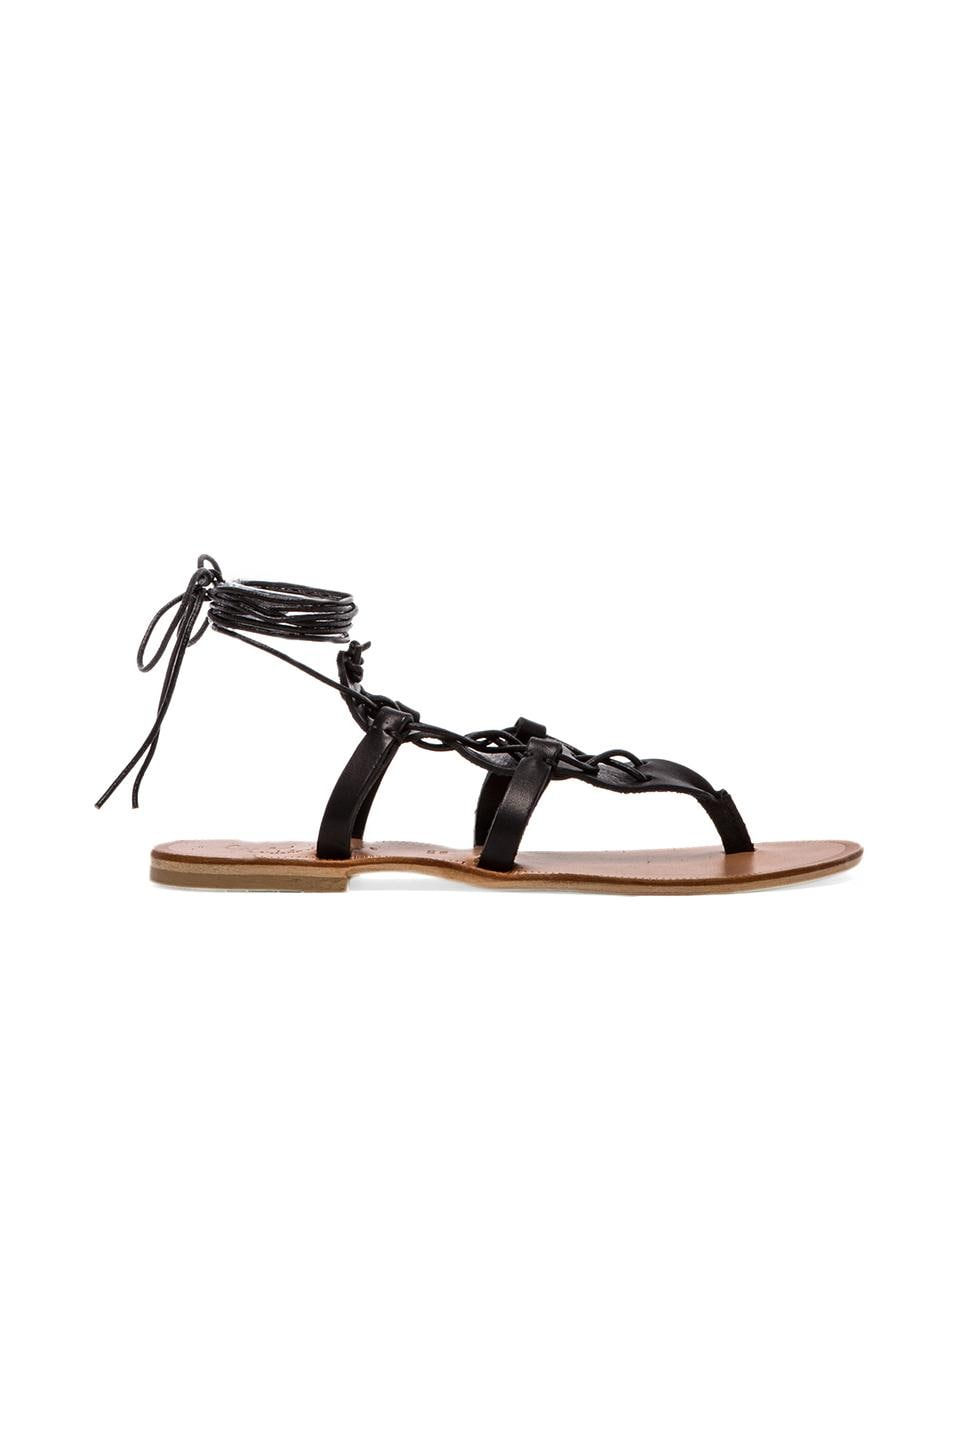 Joie Torres Sandal in Black